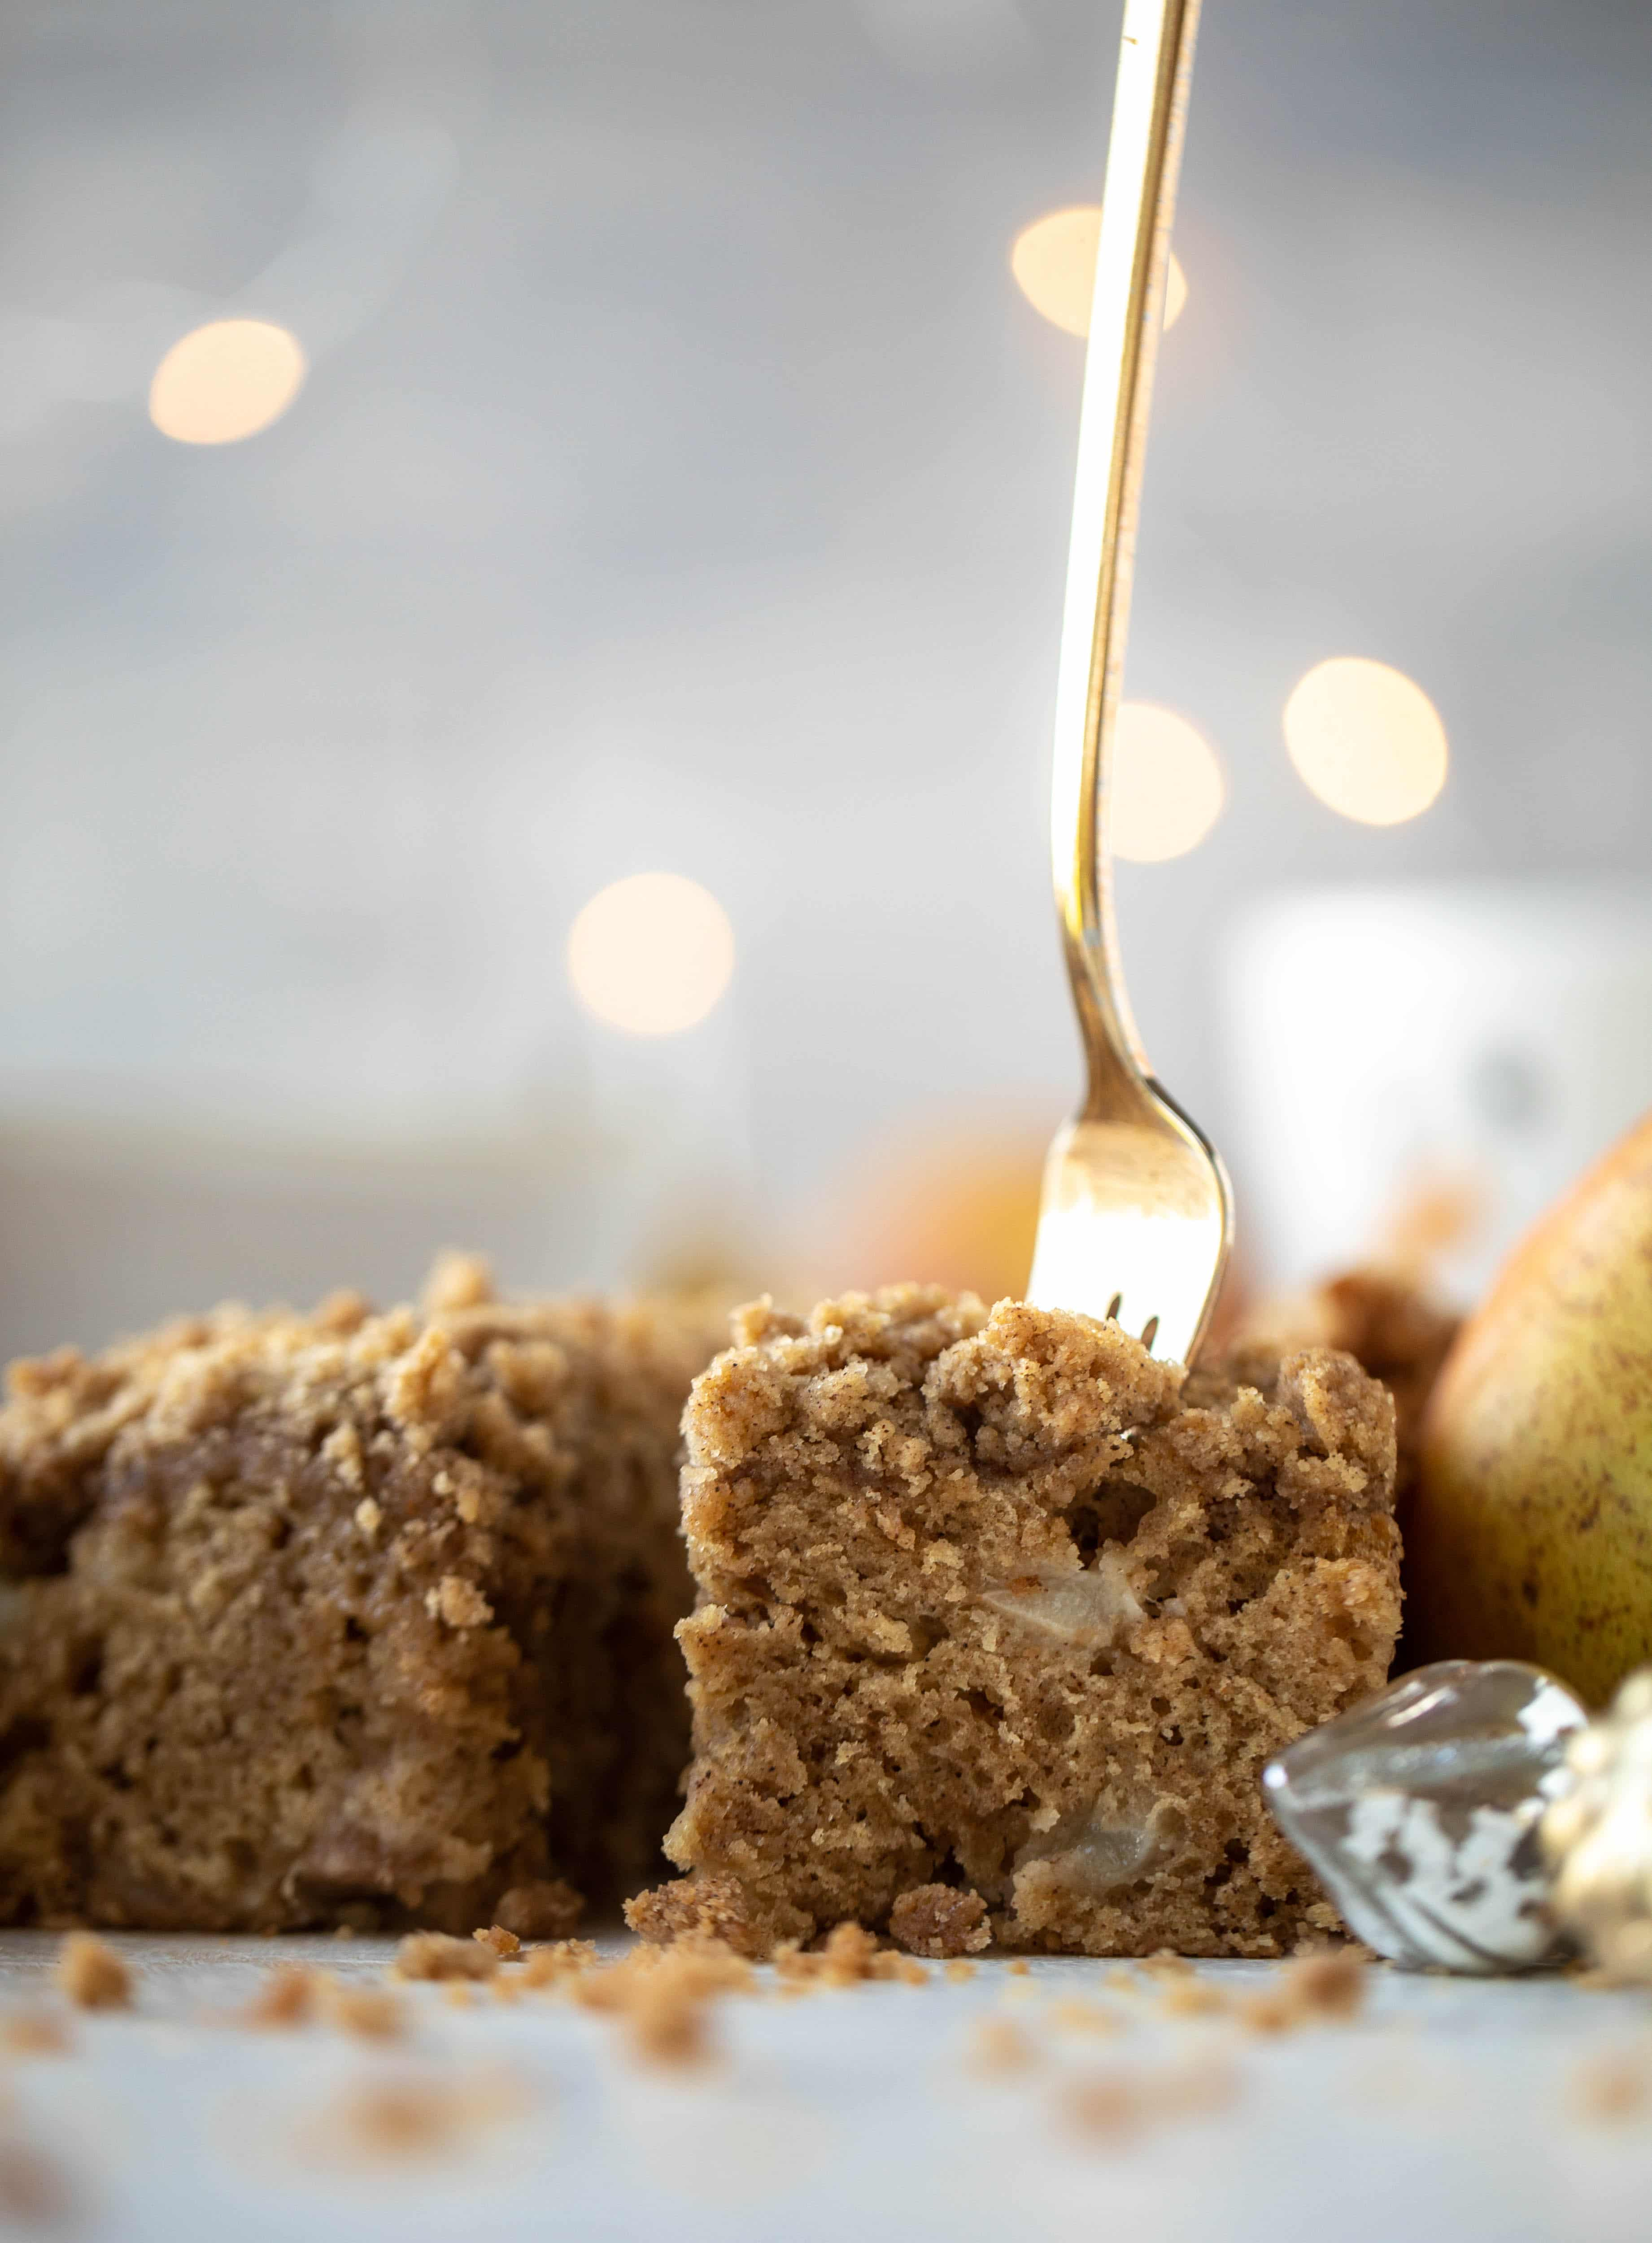 A pear coffee cake made with brown butter and greek yogurt. It's delicious for breakfast or brunch and the crumb topping is unbelievable.